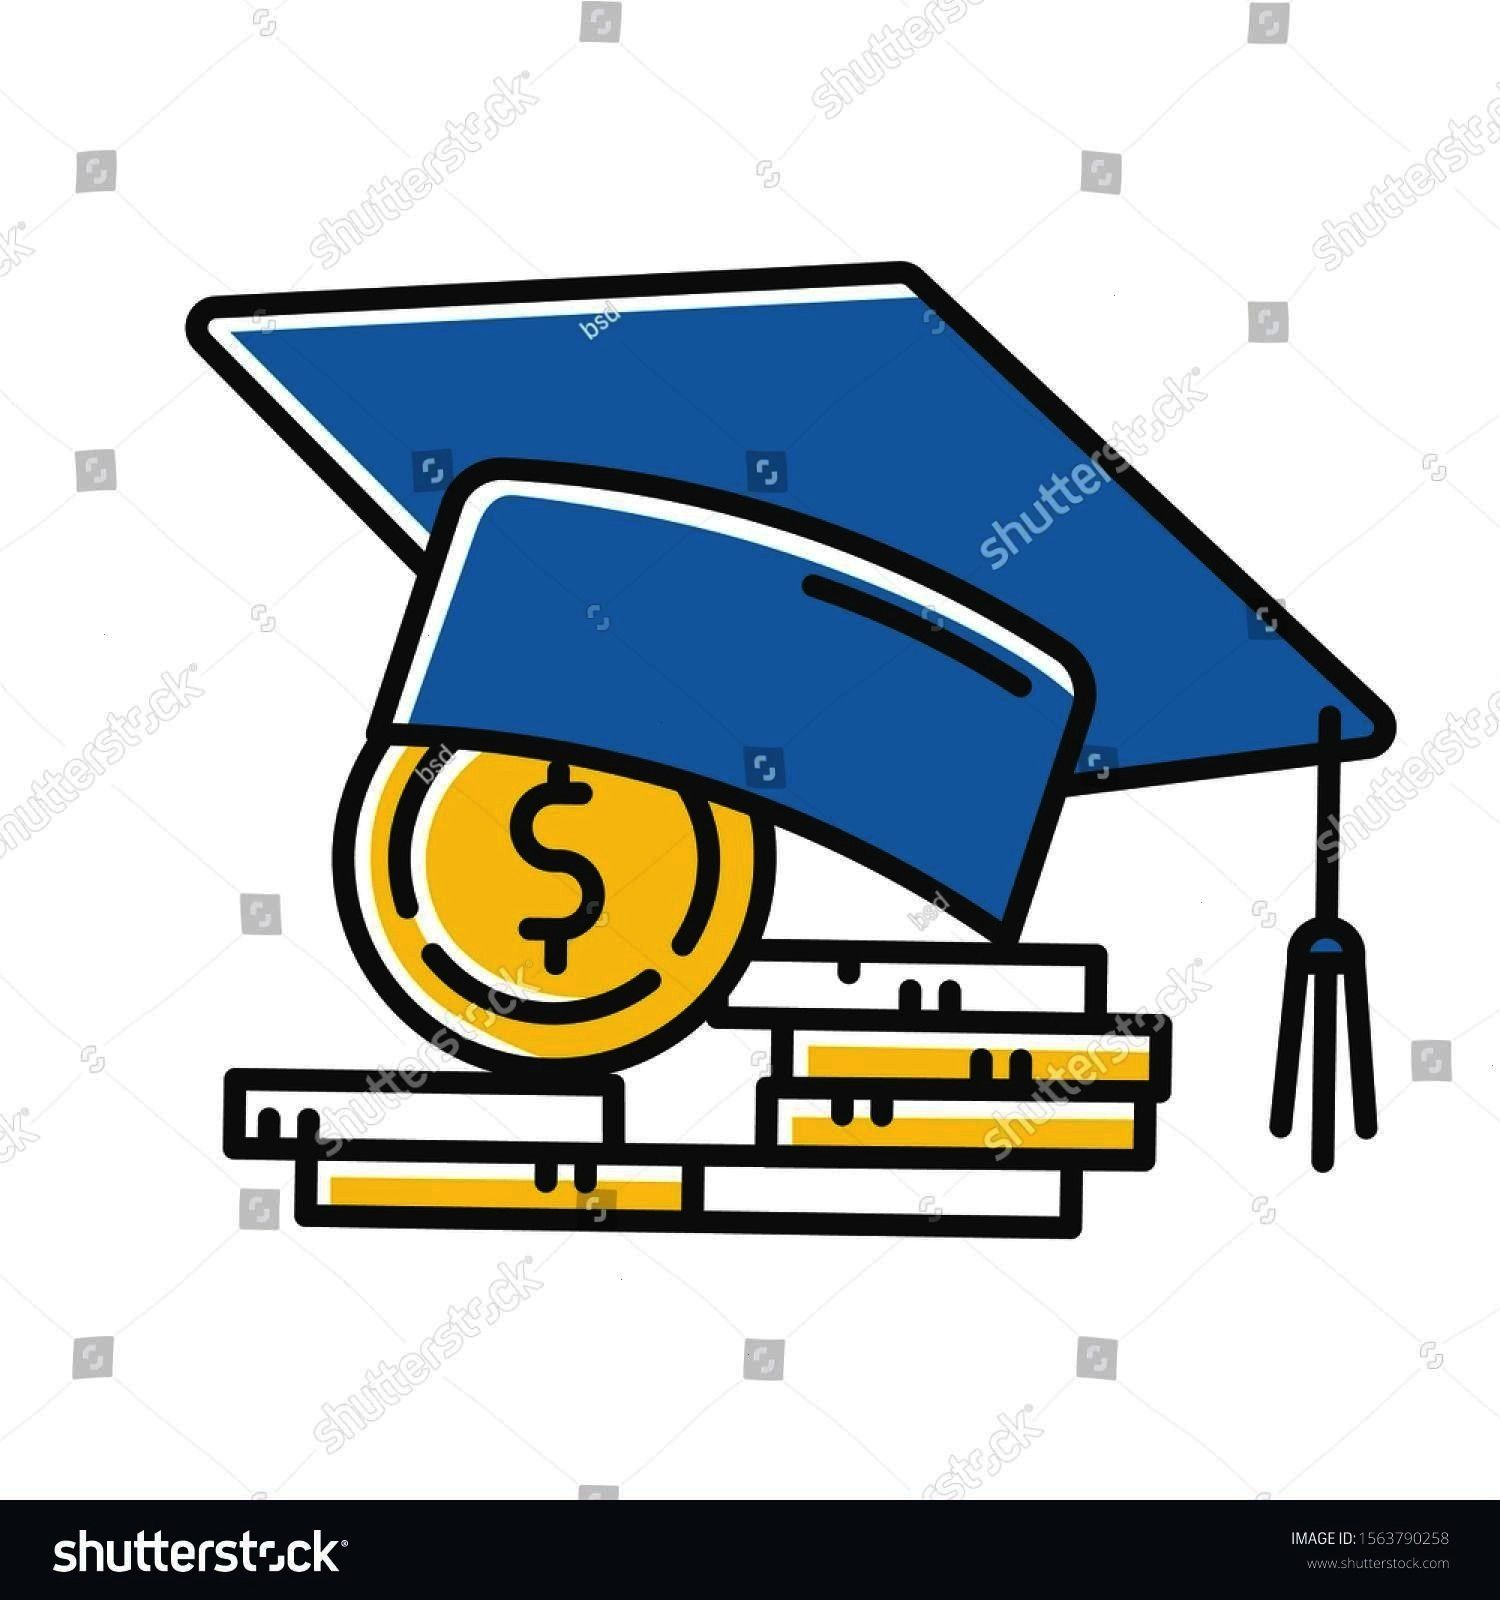 icon Credit to pay for university education Tuition fee Co Student loan color icon Credit to pay for university education Tuition fee College scolarship Graduation hat co...